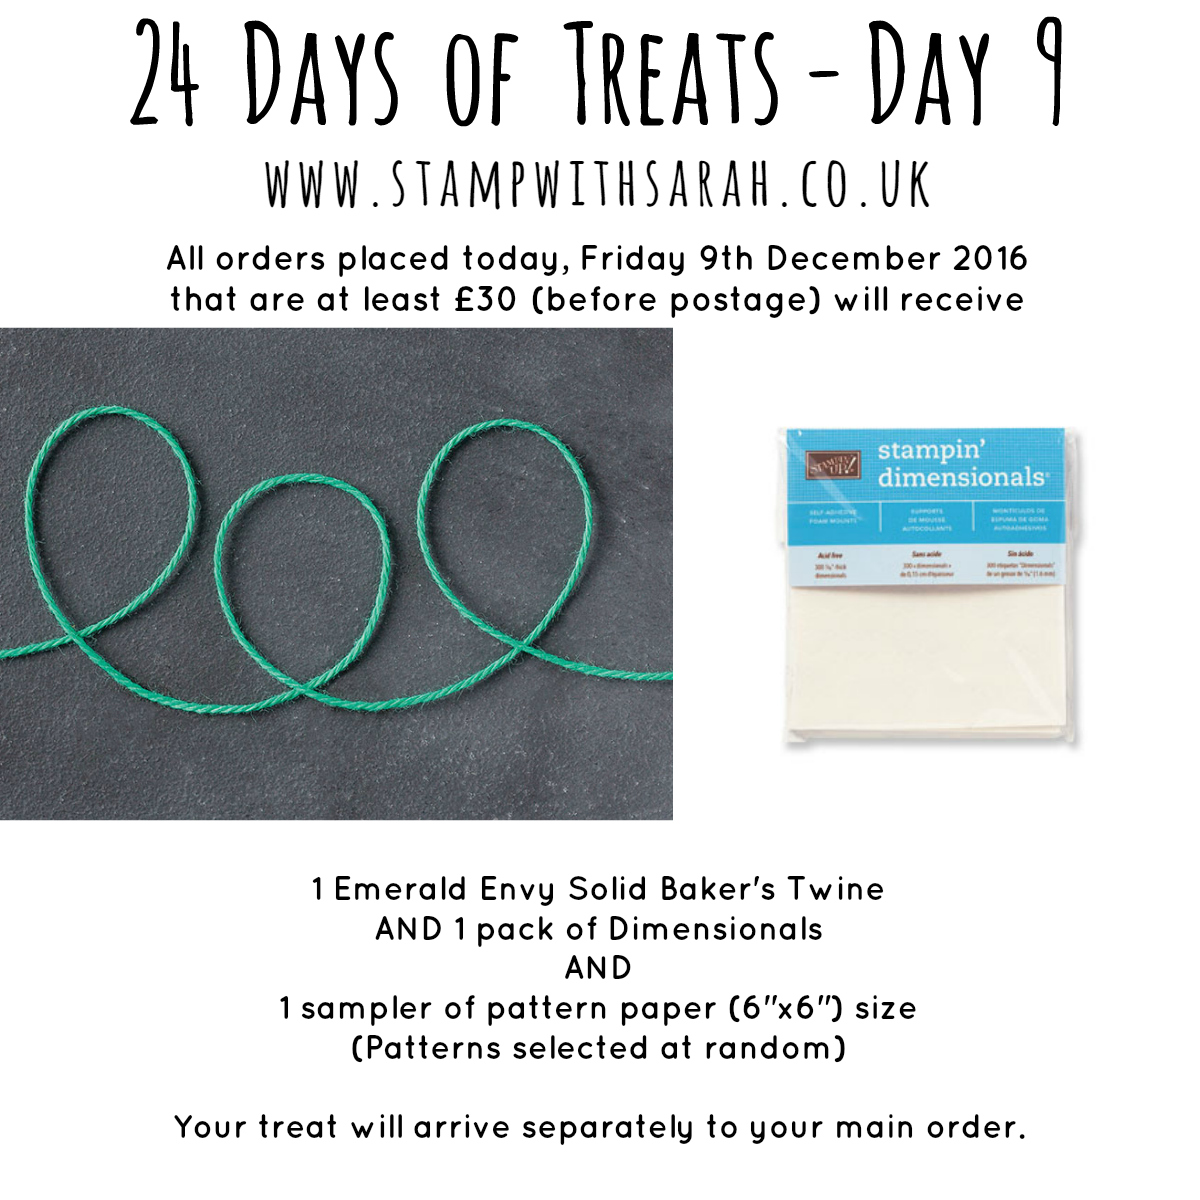 24-days-of-treats-day-9